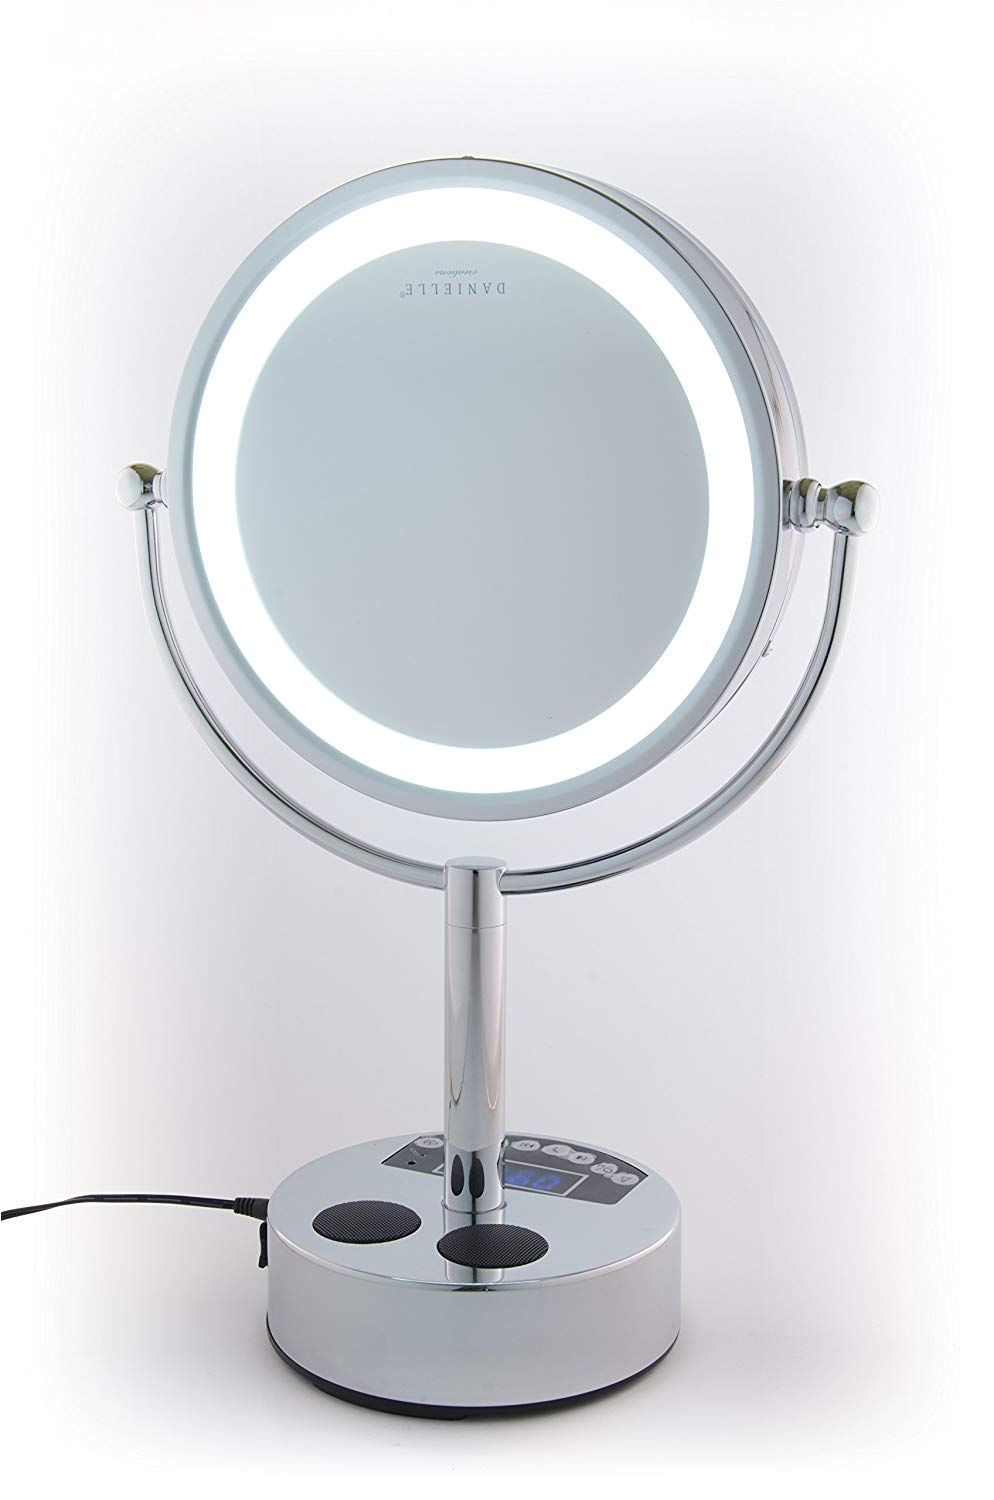 amazon com danielle creations chrome led lighted 2 sided swivel vanity make up mirror 10x magnification beauty